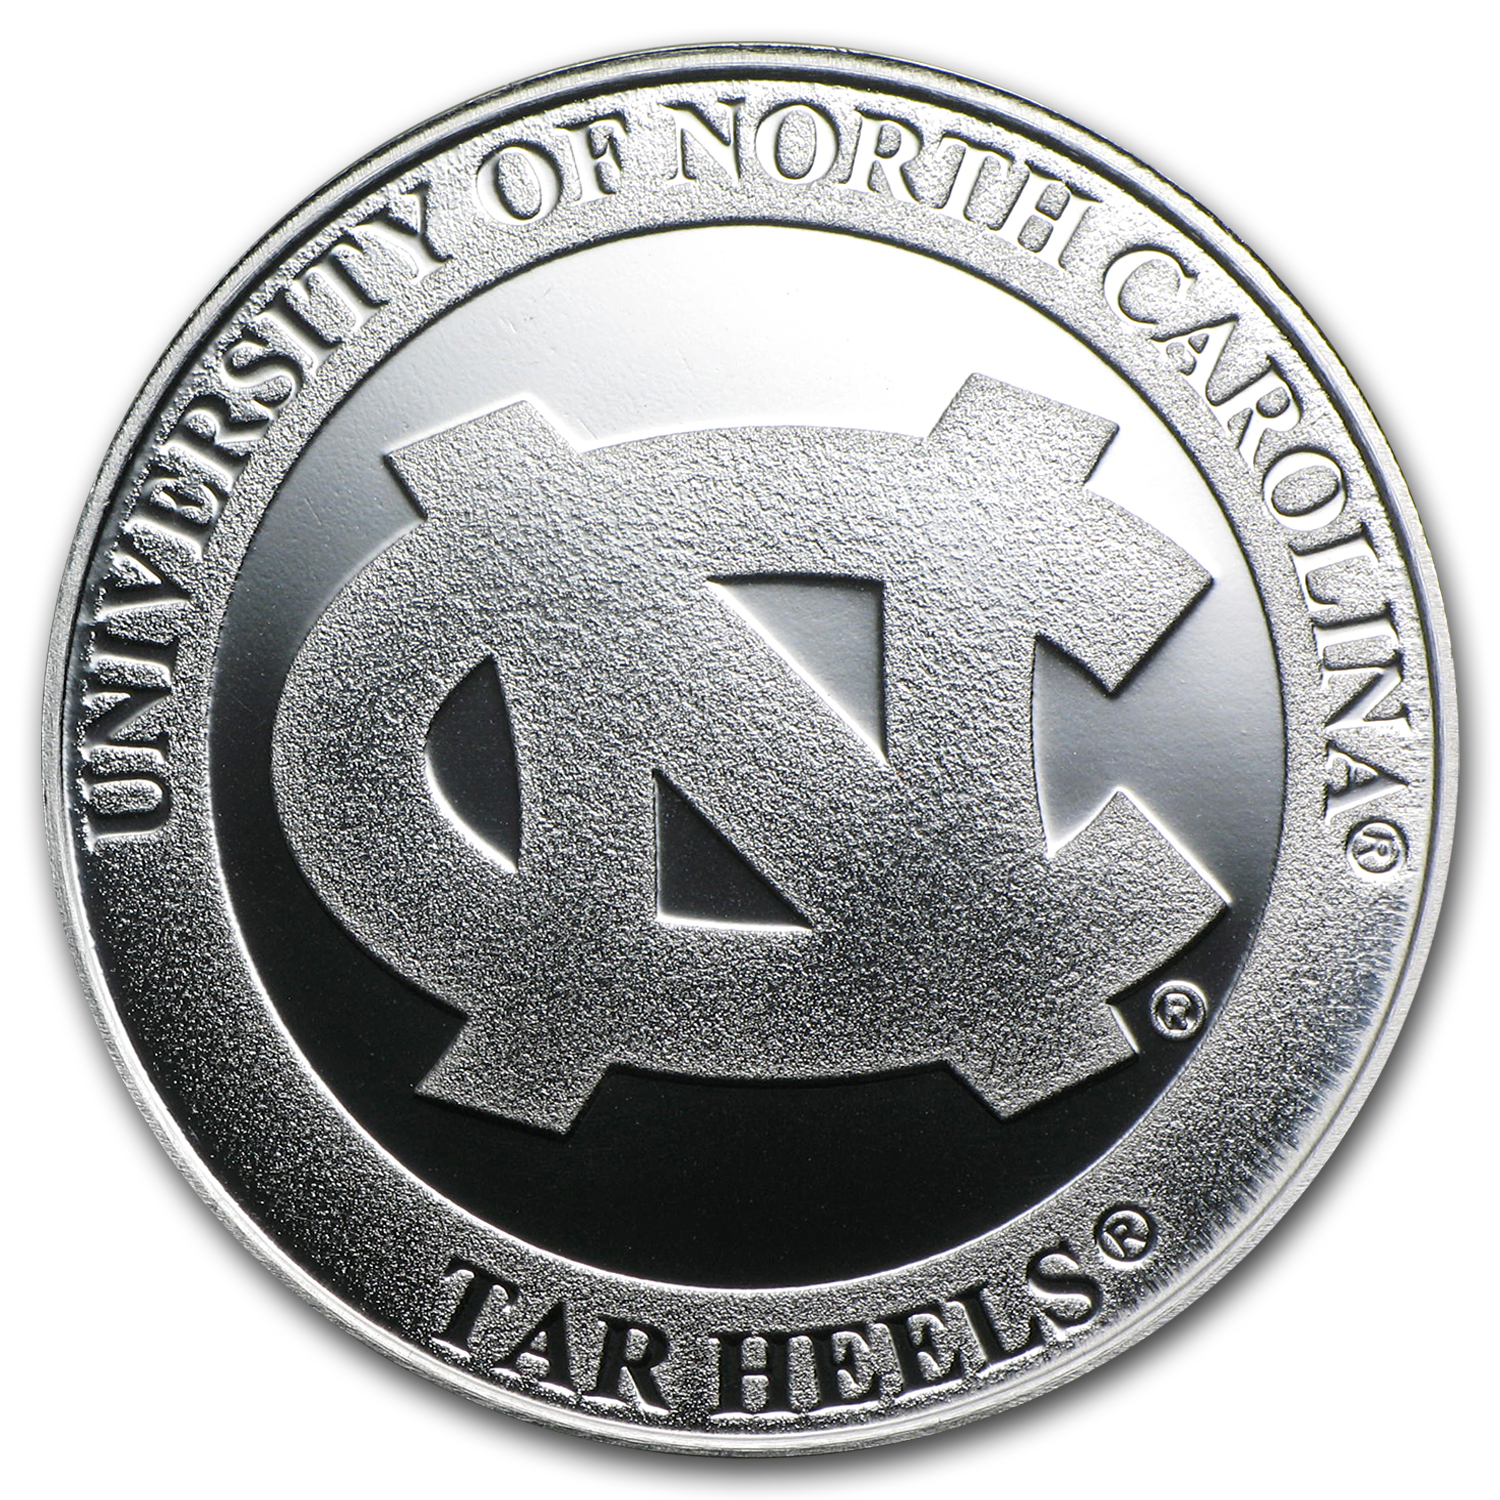 1 oz Silver Round - University of North Carolina